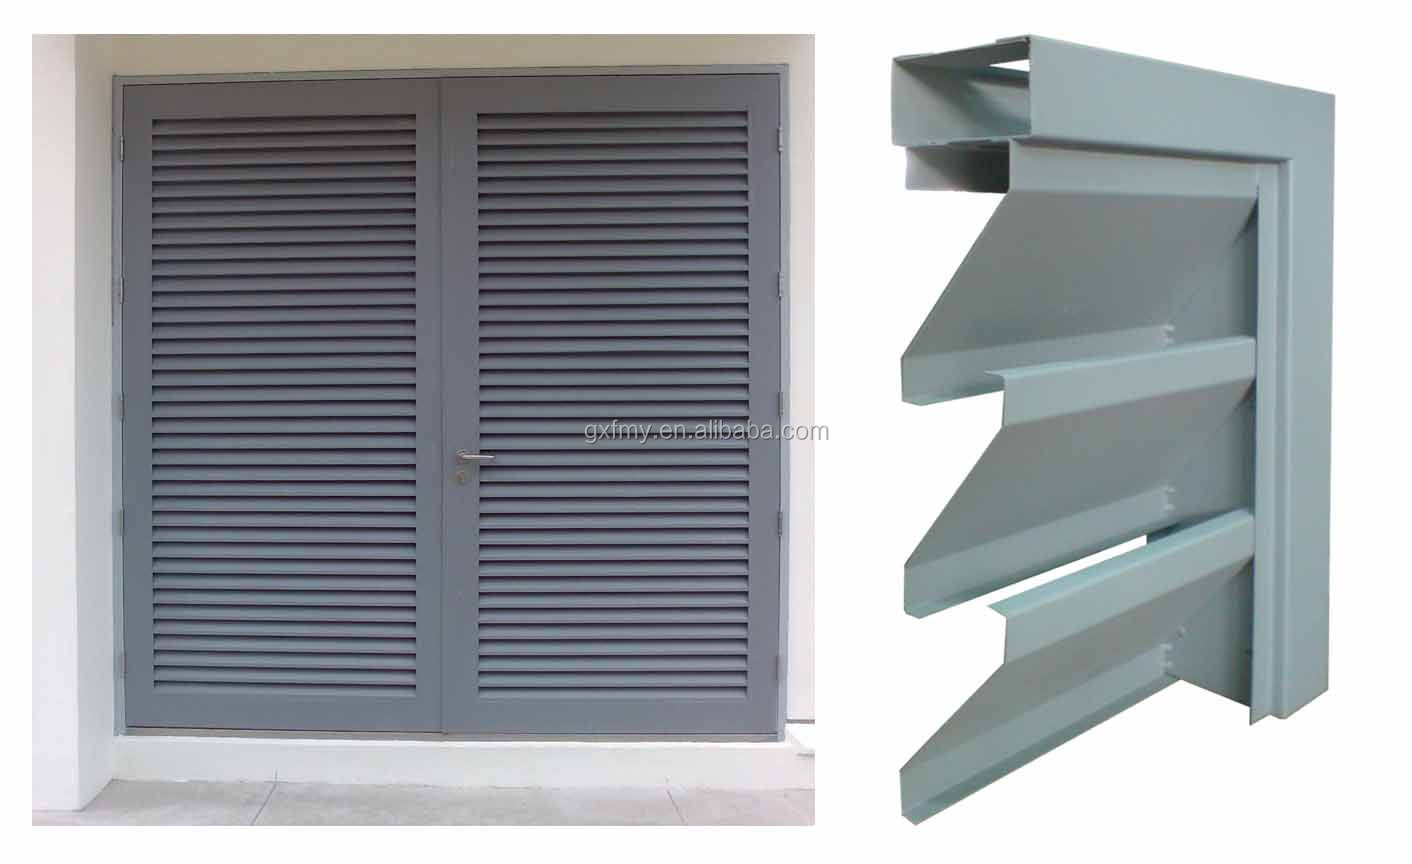 Hot sale exterior aluminum roller shutter window aluminum window louver aluminum louver blade for Exterior louvered window shutters